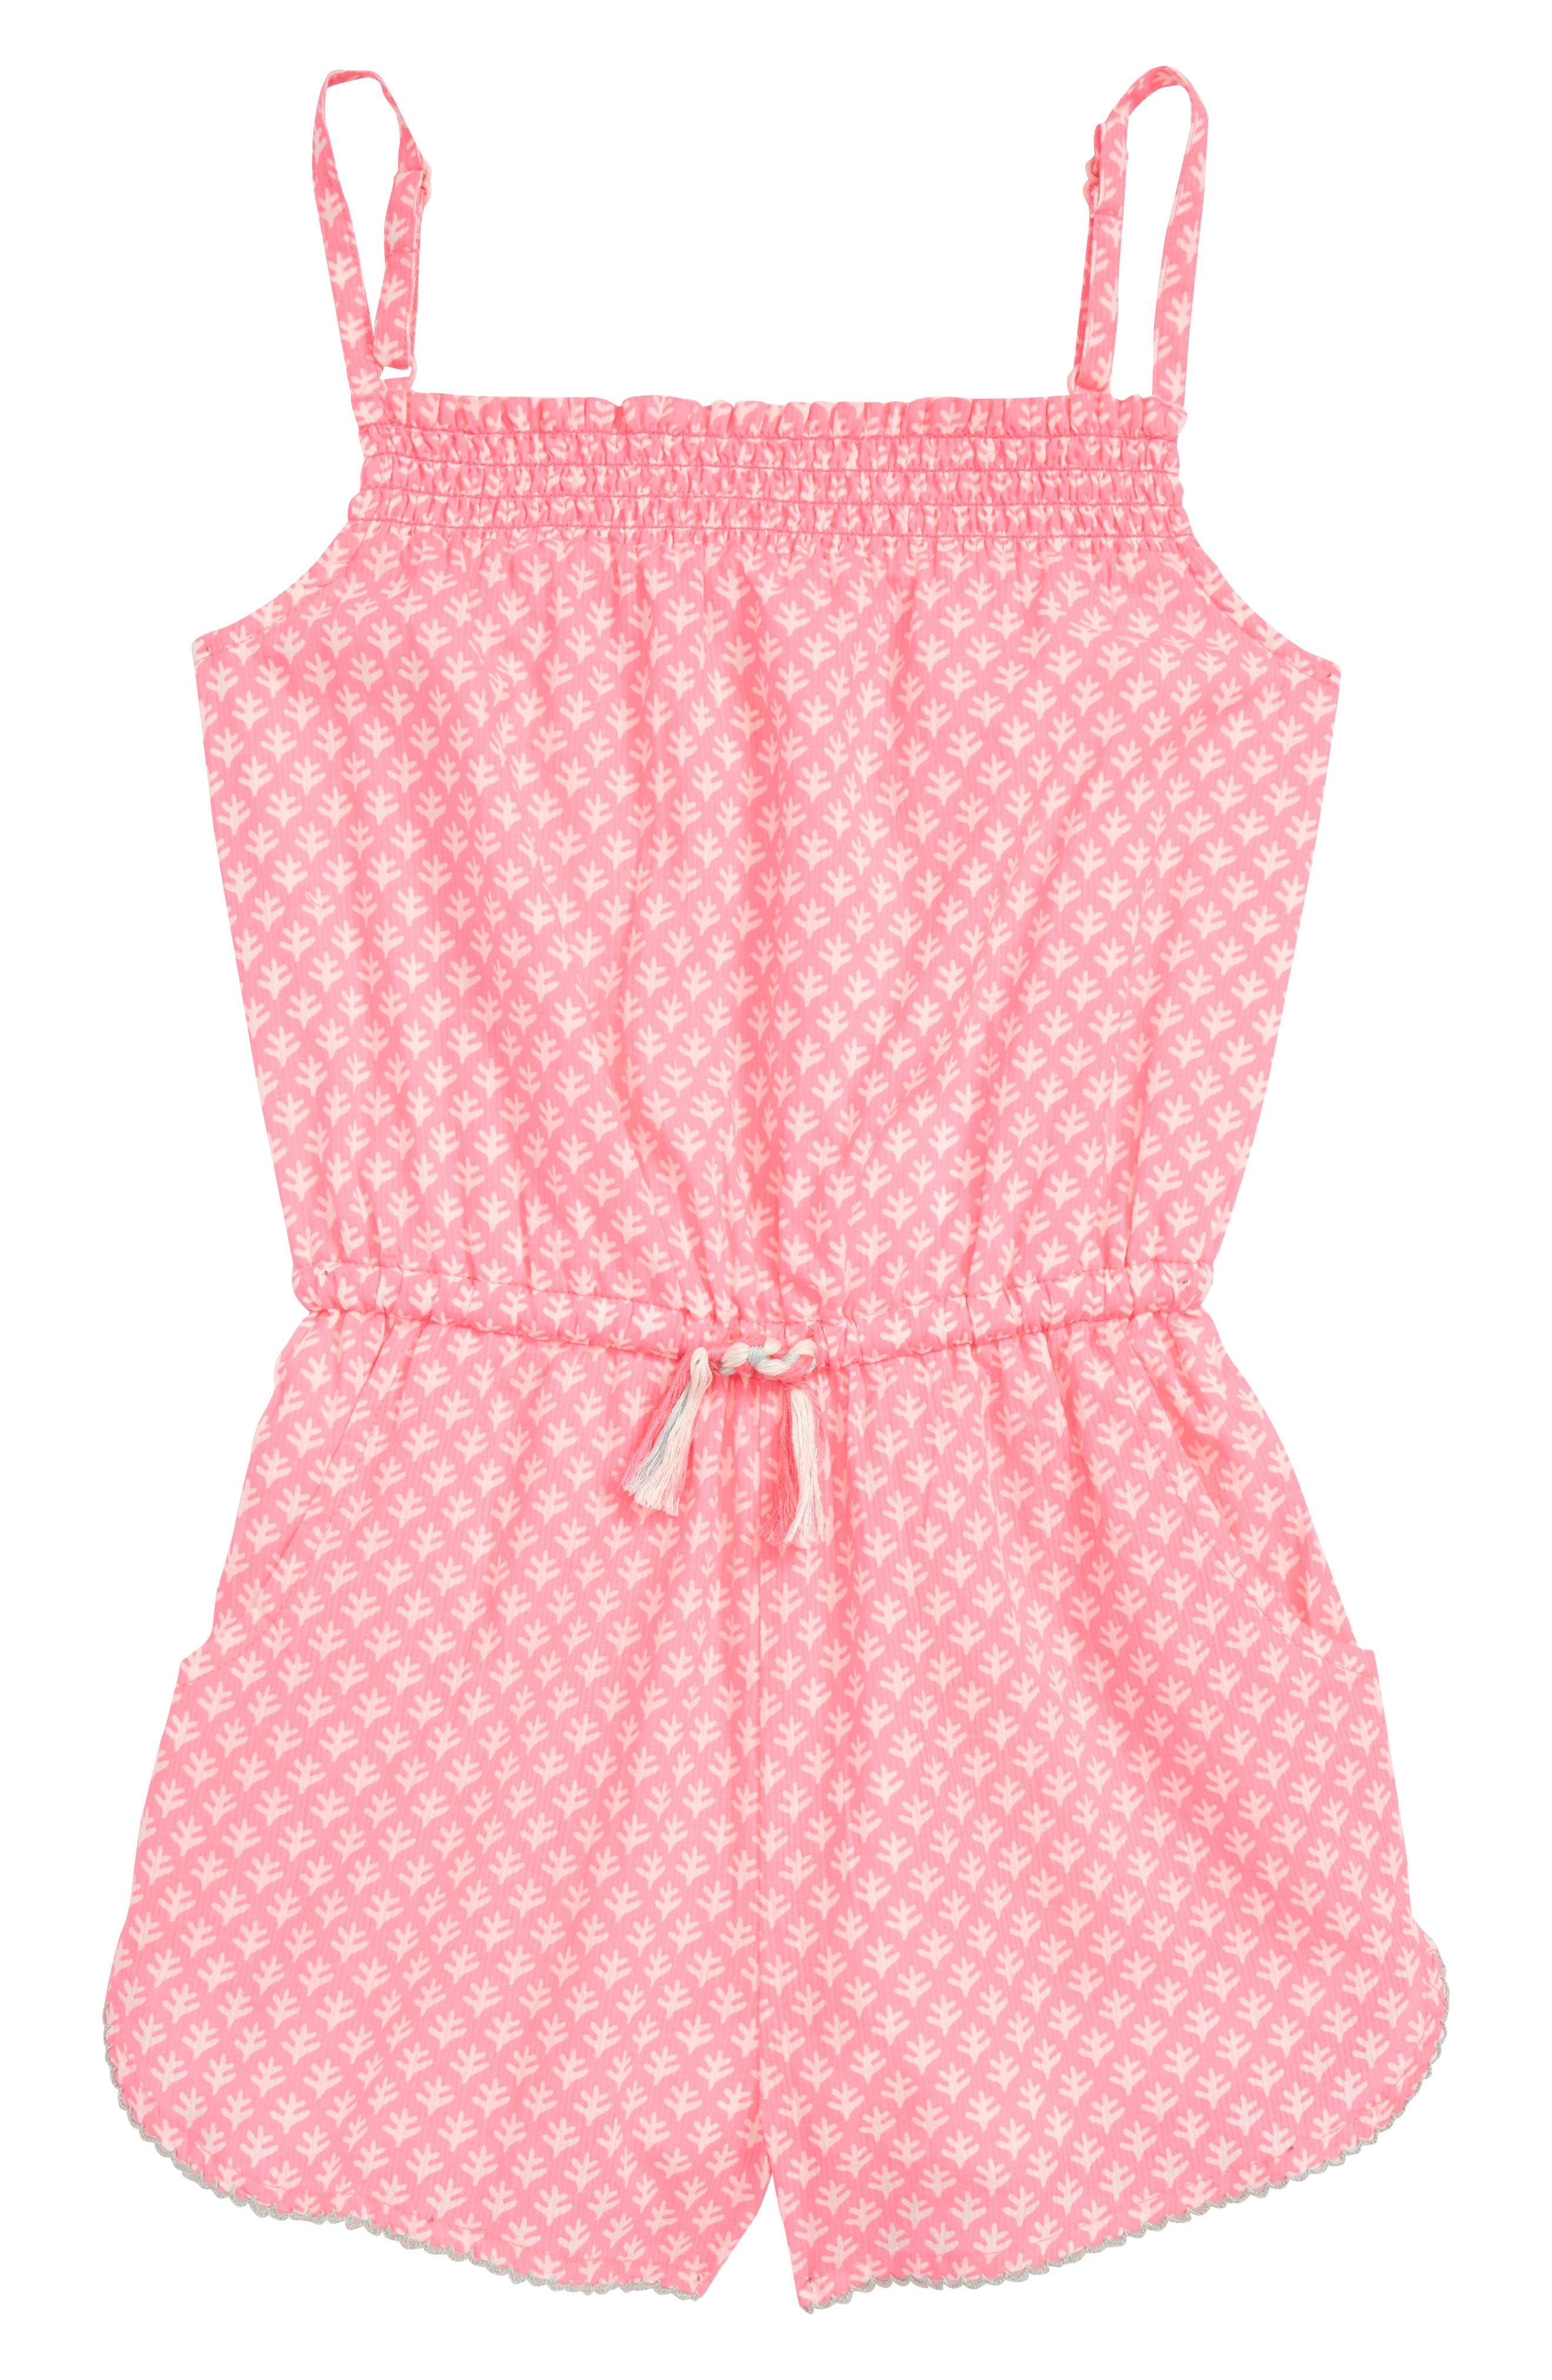 Strappy Woven Romper,                             Main thumbnail 1, color,                             Knockout Pink/ Ivory Geo Coral